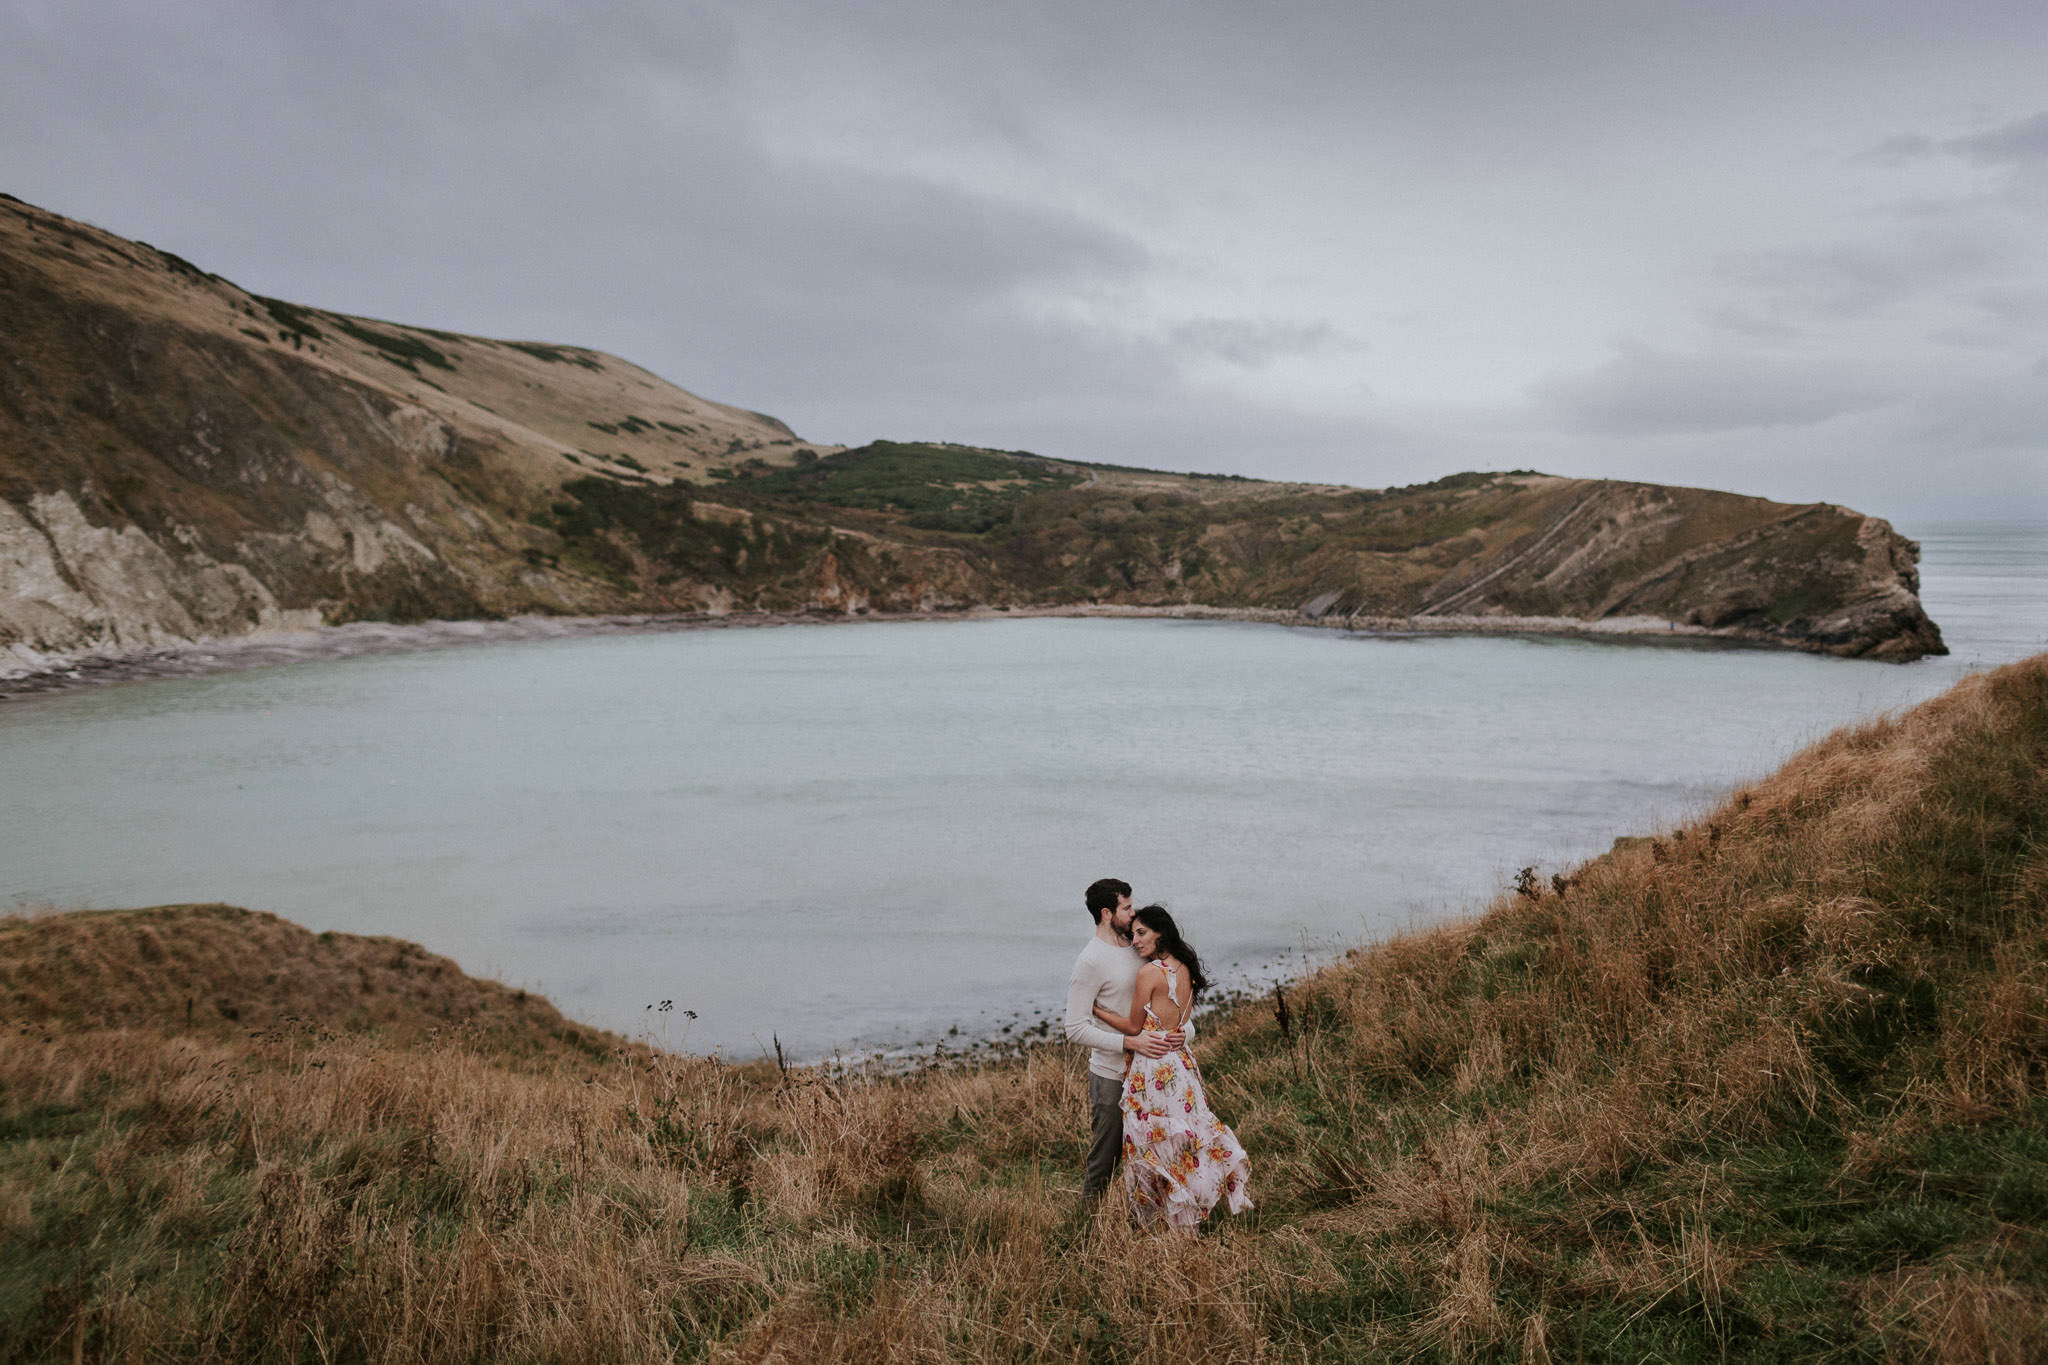 Seaside Engagement Photo Shoot on Jurassic Coast, Corfe Castle & Lulworth Cove